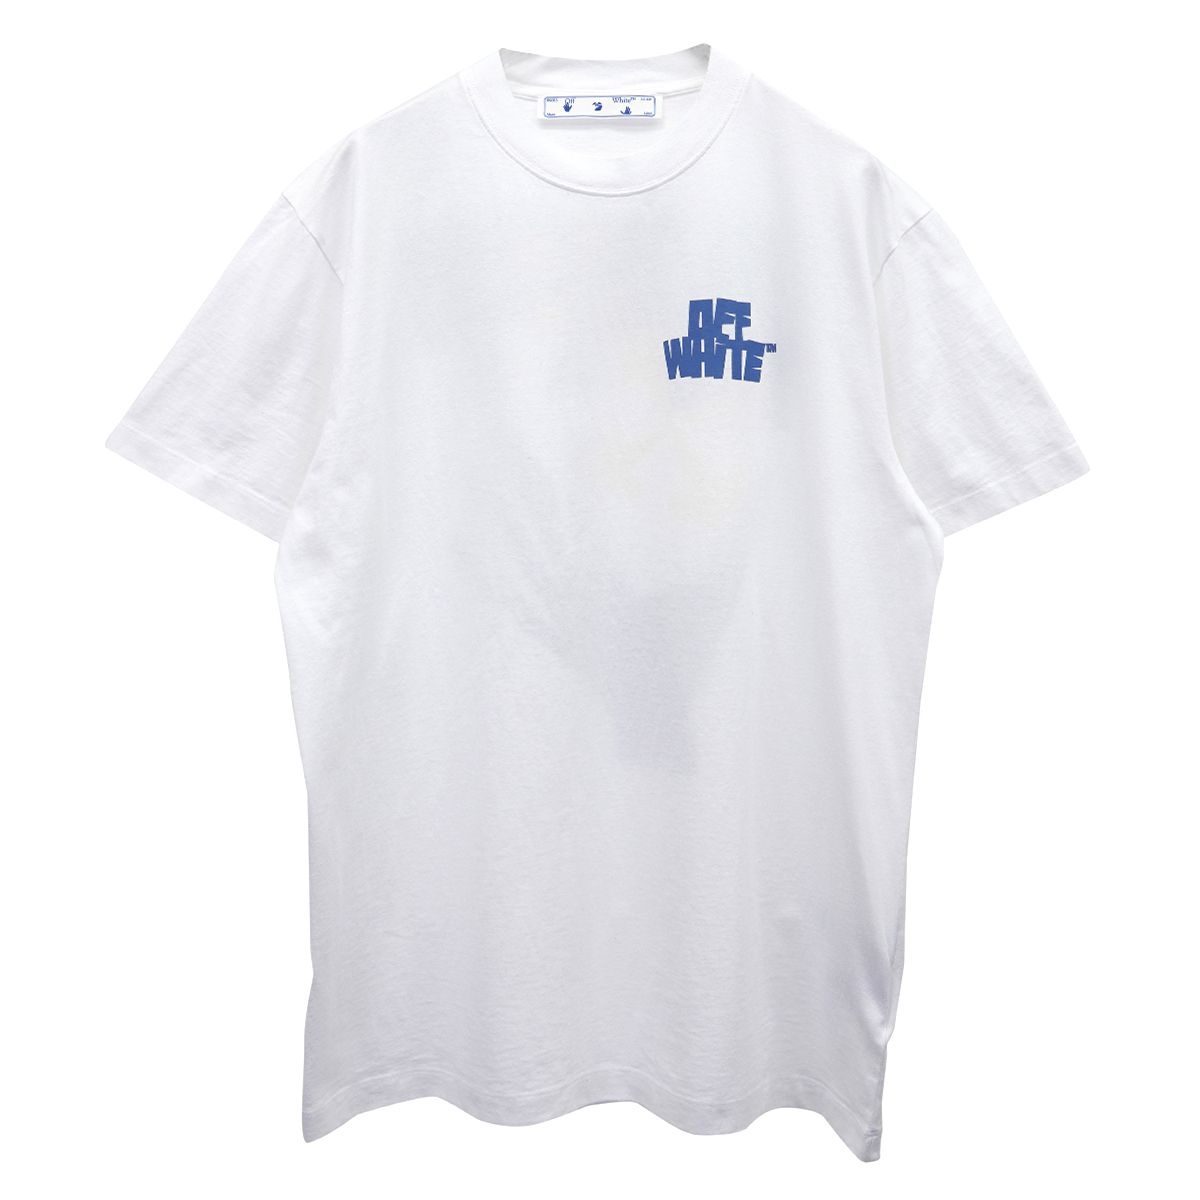 OFF-WHITE c/o Virgil Abloh MENS HANDS ARROWS S/S OVER TEE / 0140 : WHITE LIGHT BLUE